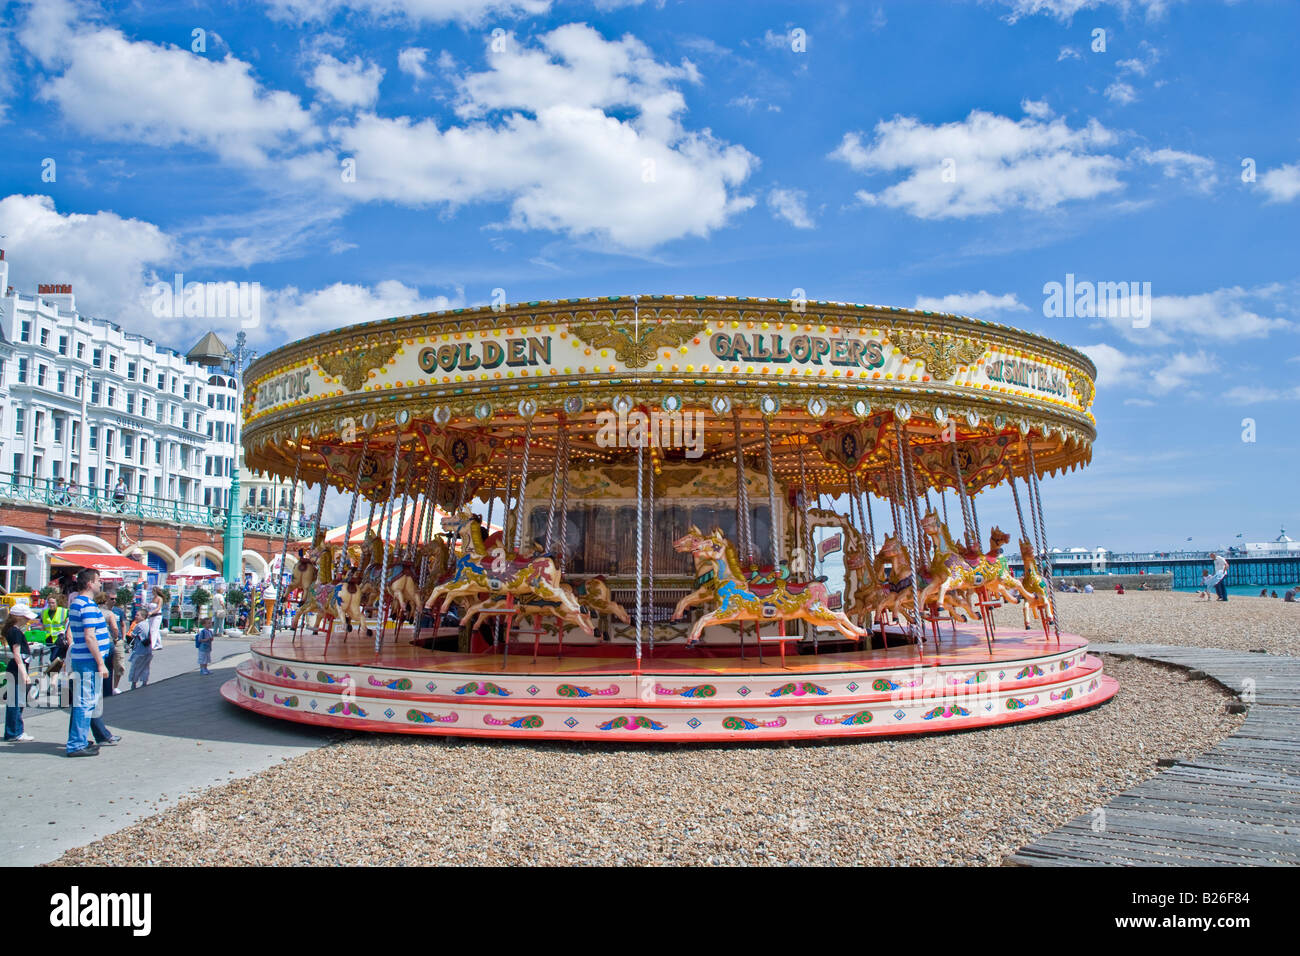 carousel brighton beach carnival old old fashioned circus uk